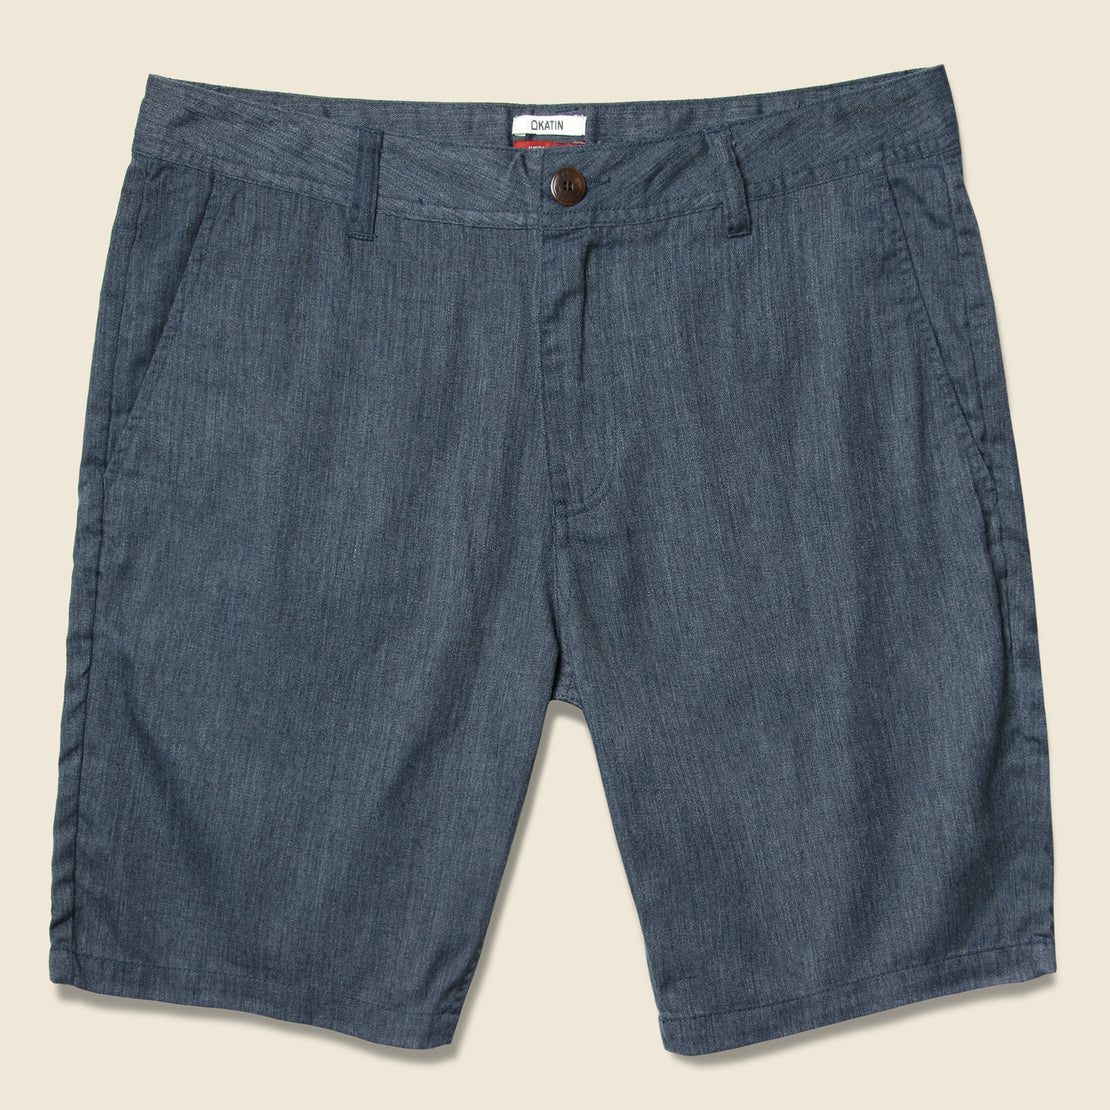 Katin Court Short - Navy